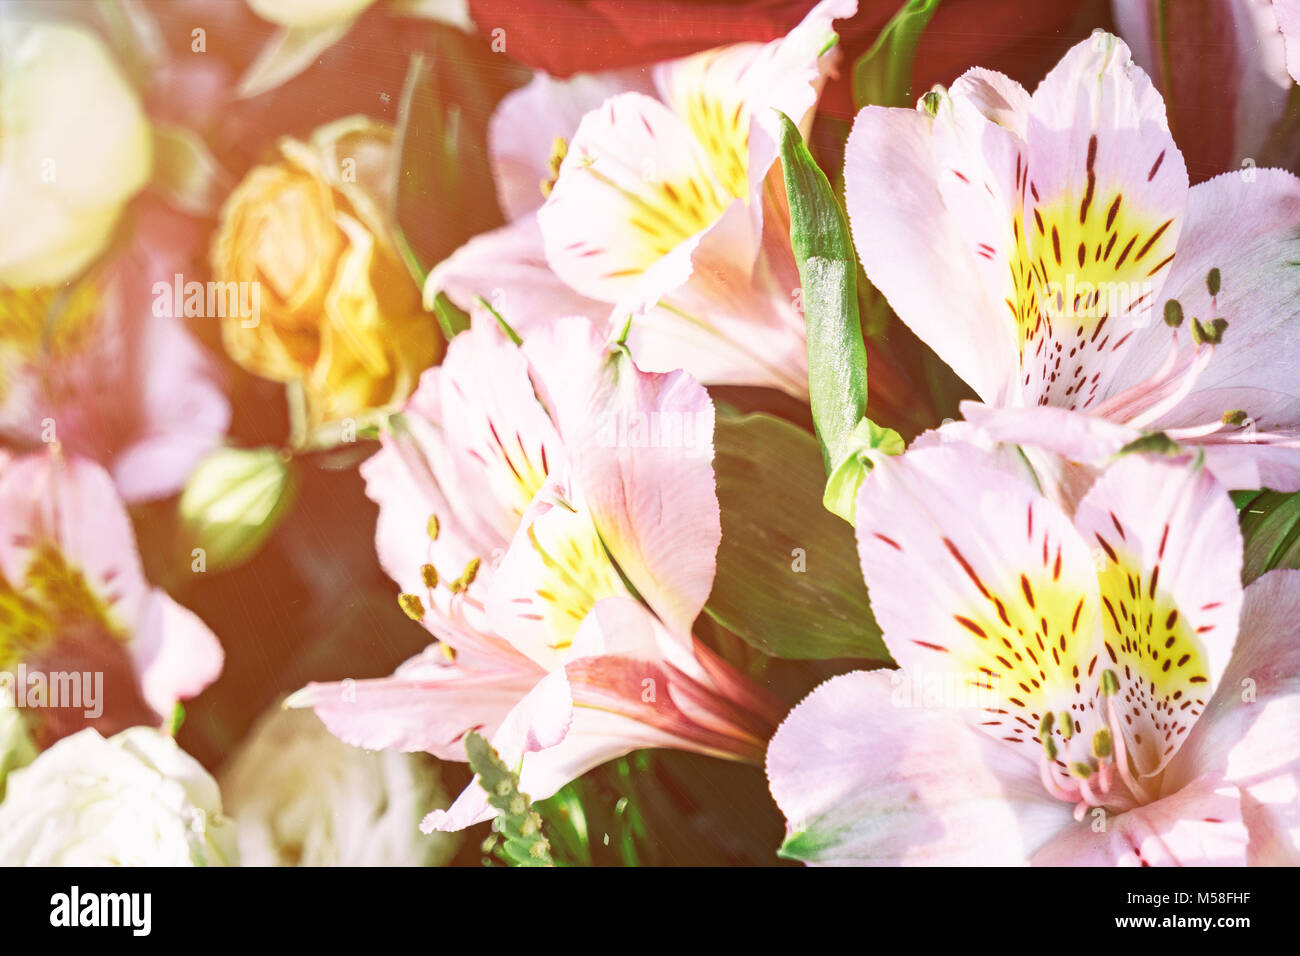 Field of pink lilies stock photos field of pink lilies stock flowers beautiful pink lilies in a bouquet stock image izmirmasajfo